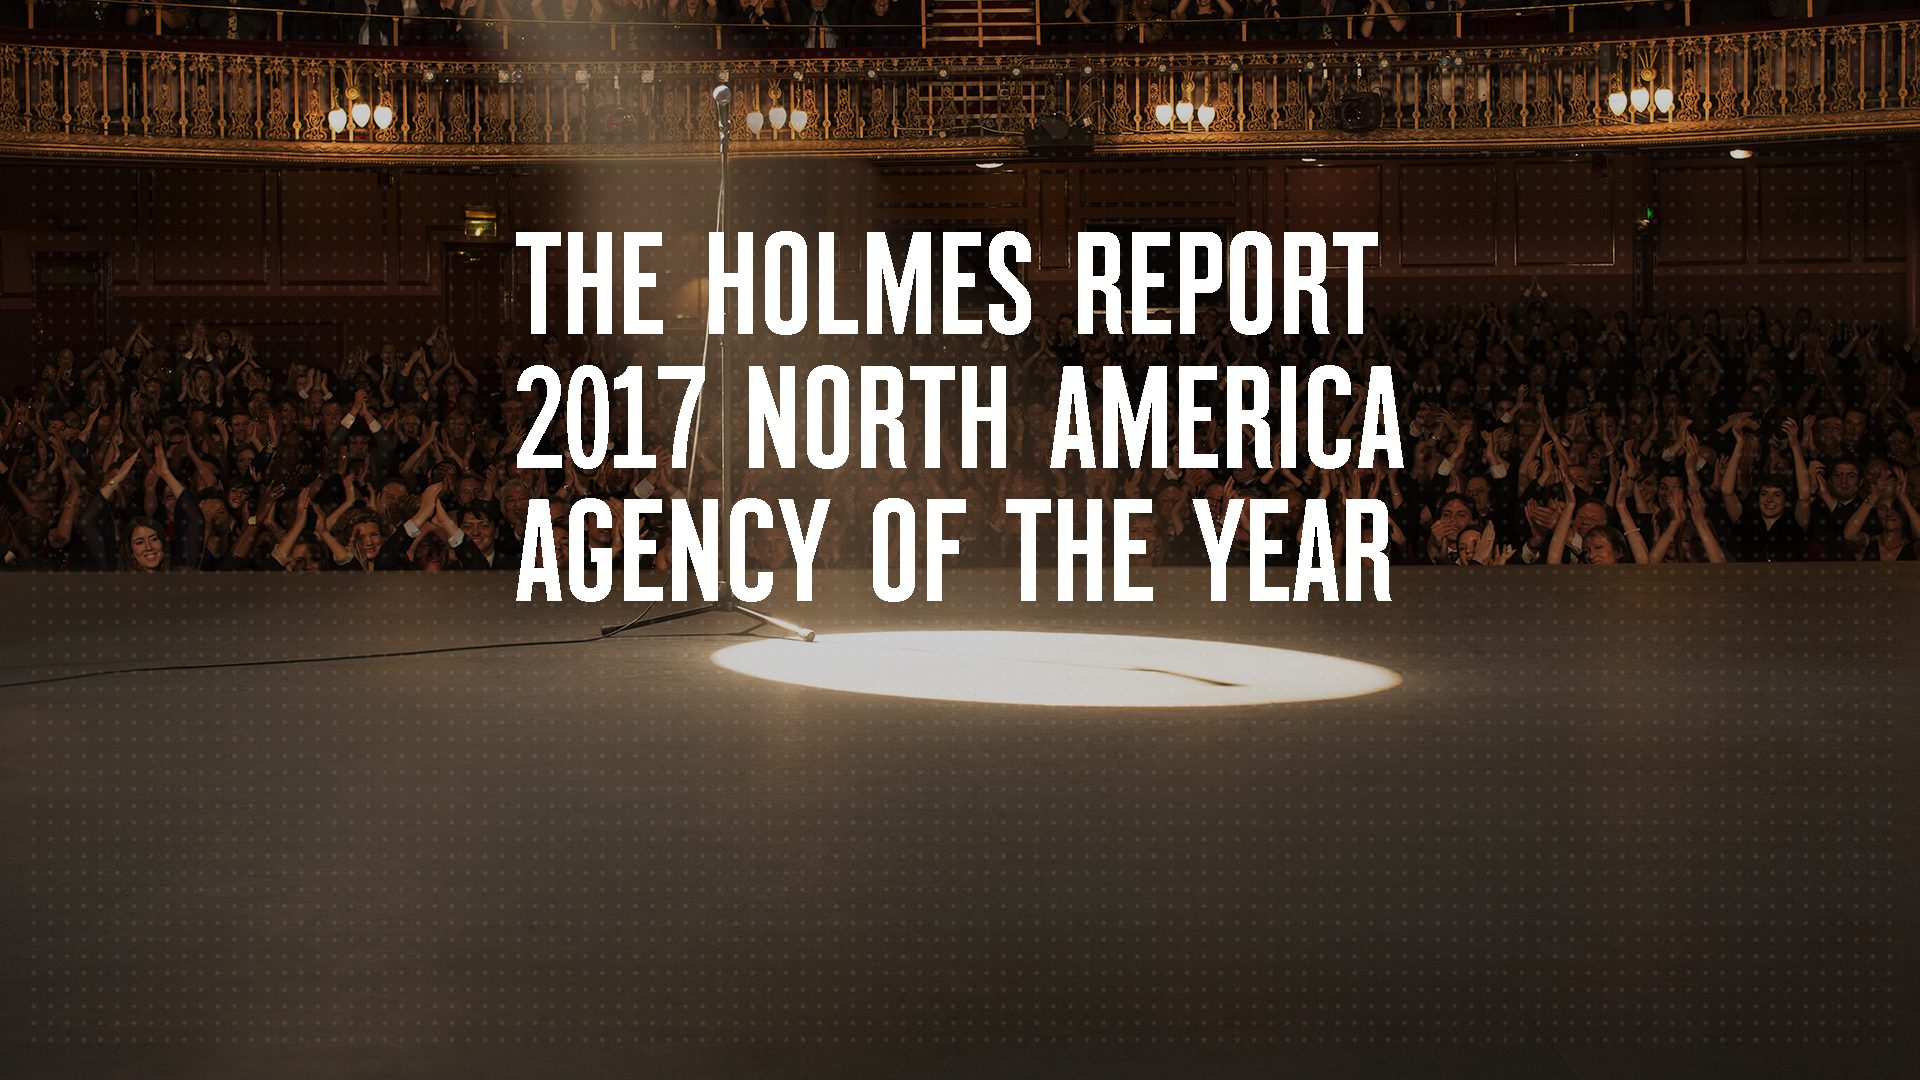 Weber Shandwick Named 2017 North America Agency of the Year by The Holmes Report